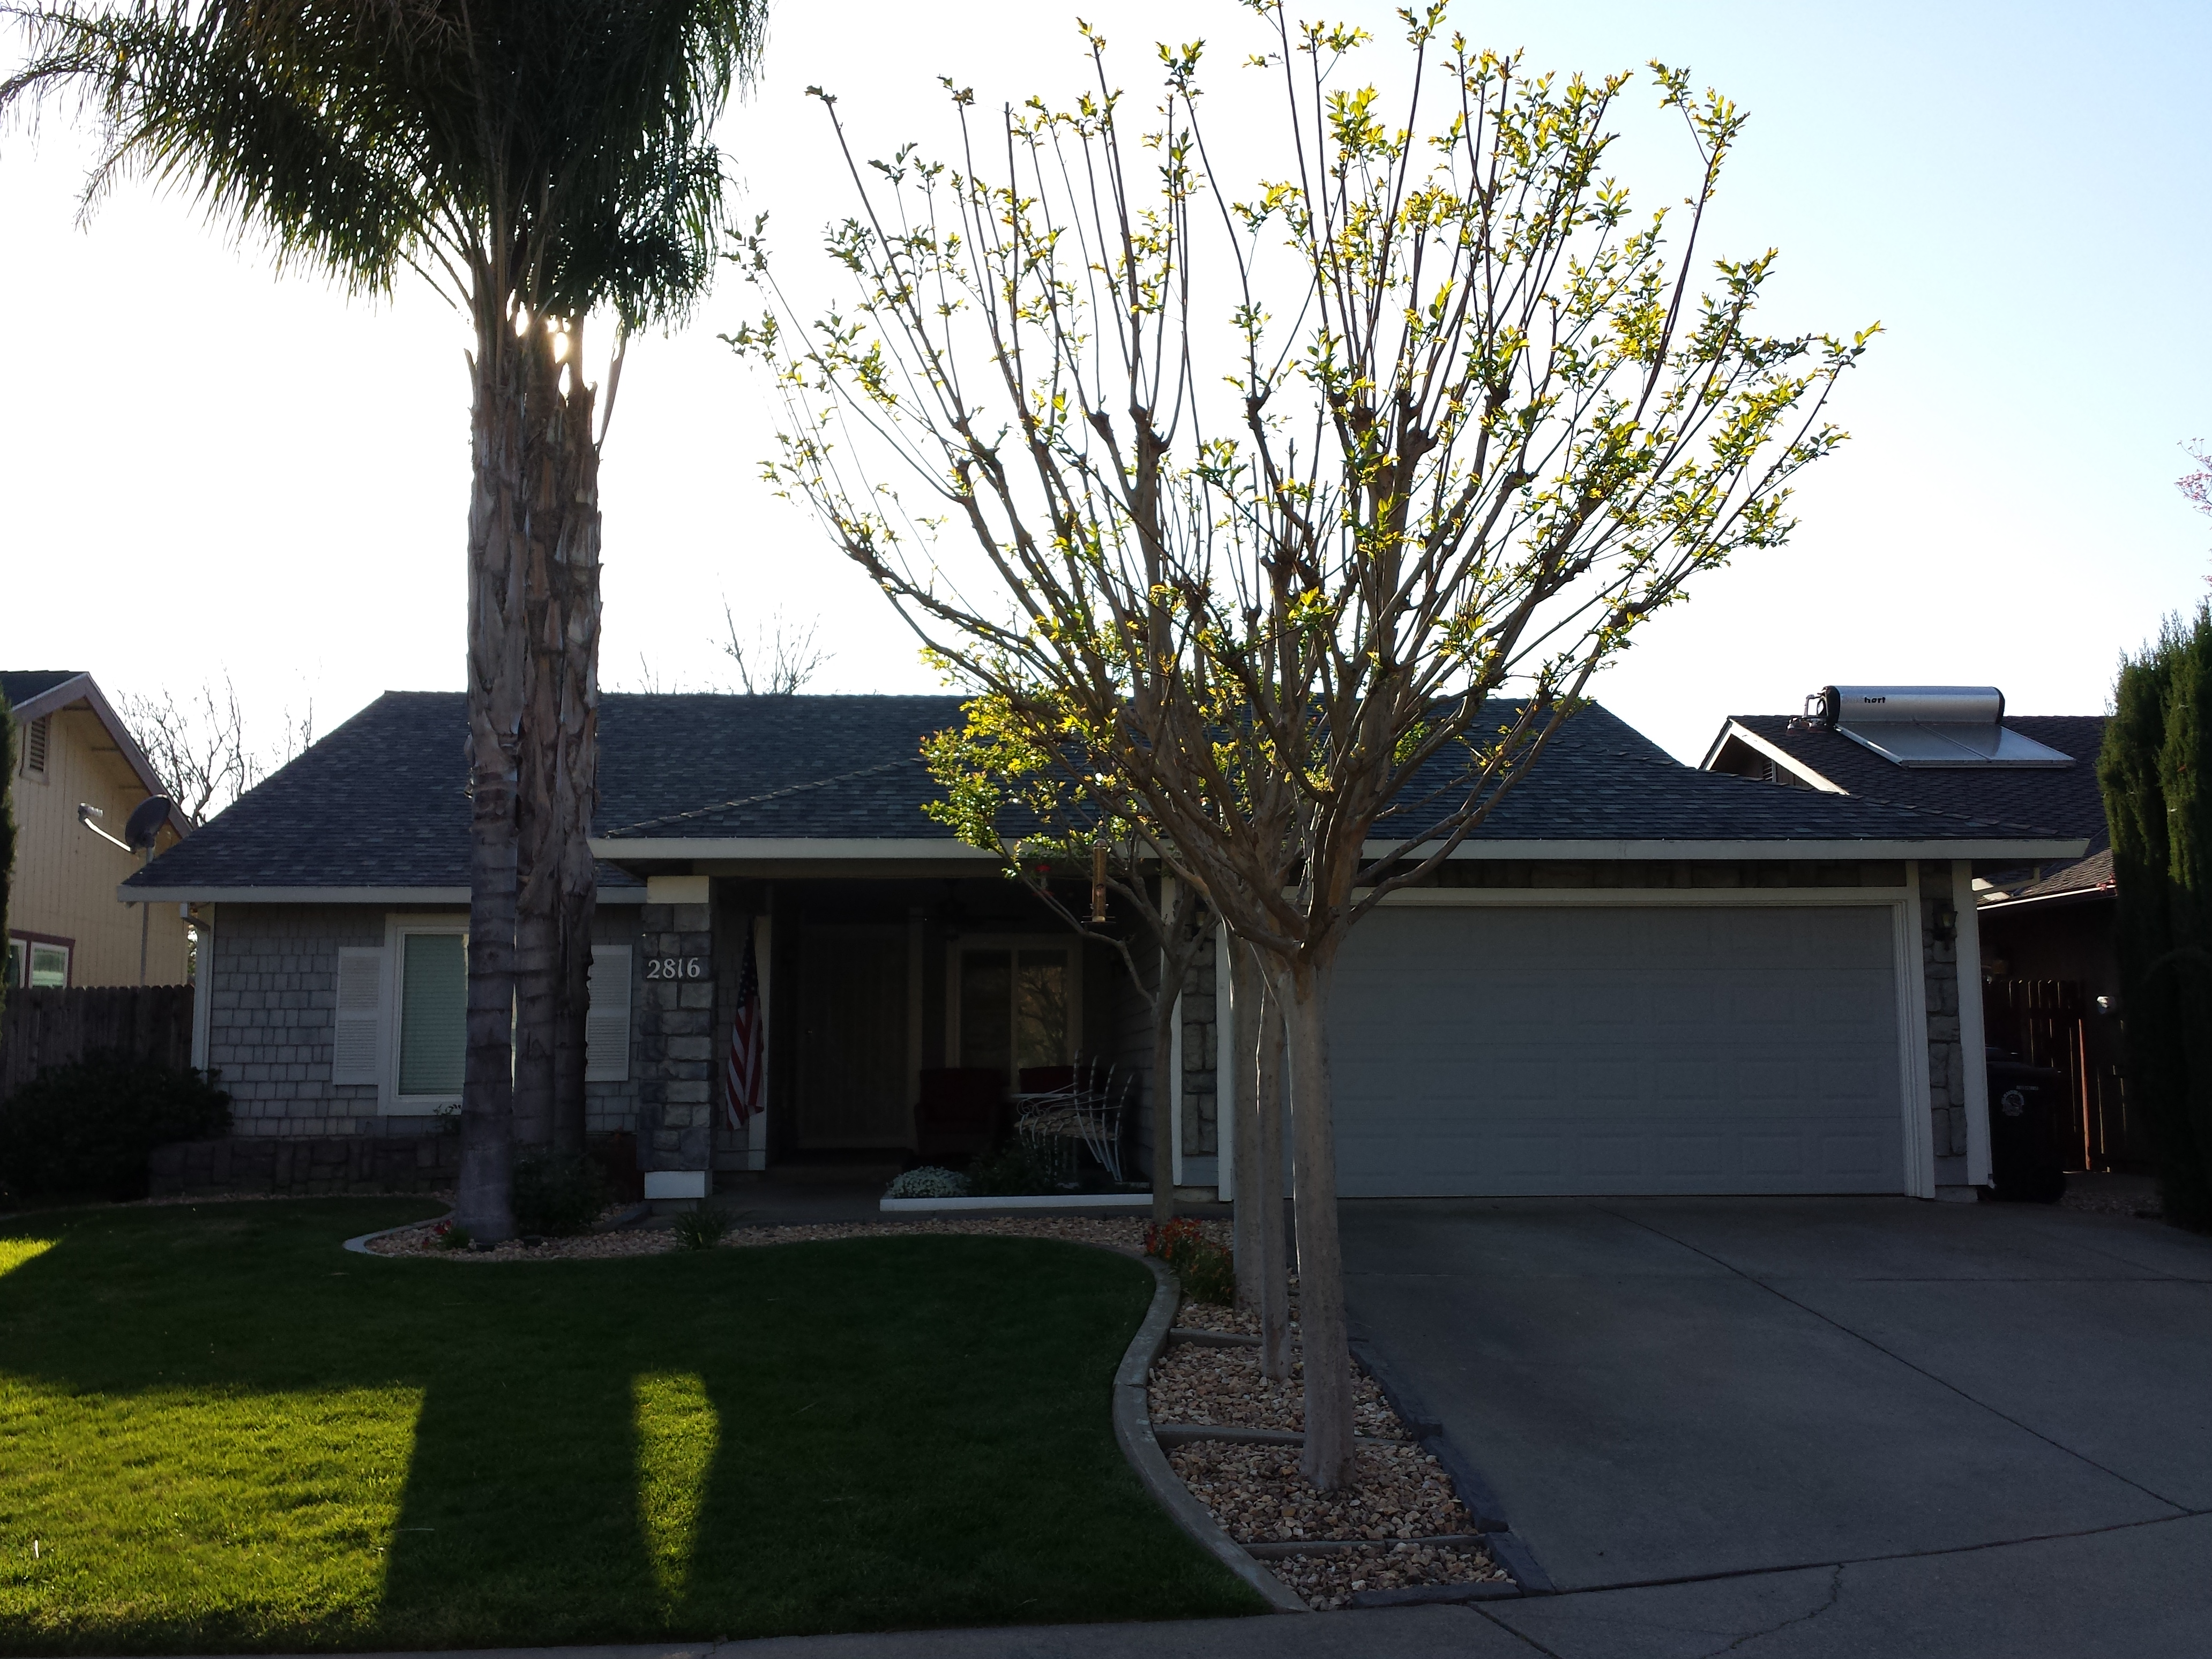 2816 Tiffany West - For Sale from Sacramento Agent Allan Sanchez